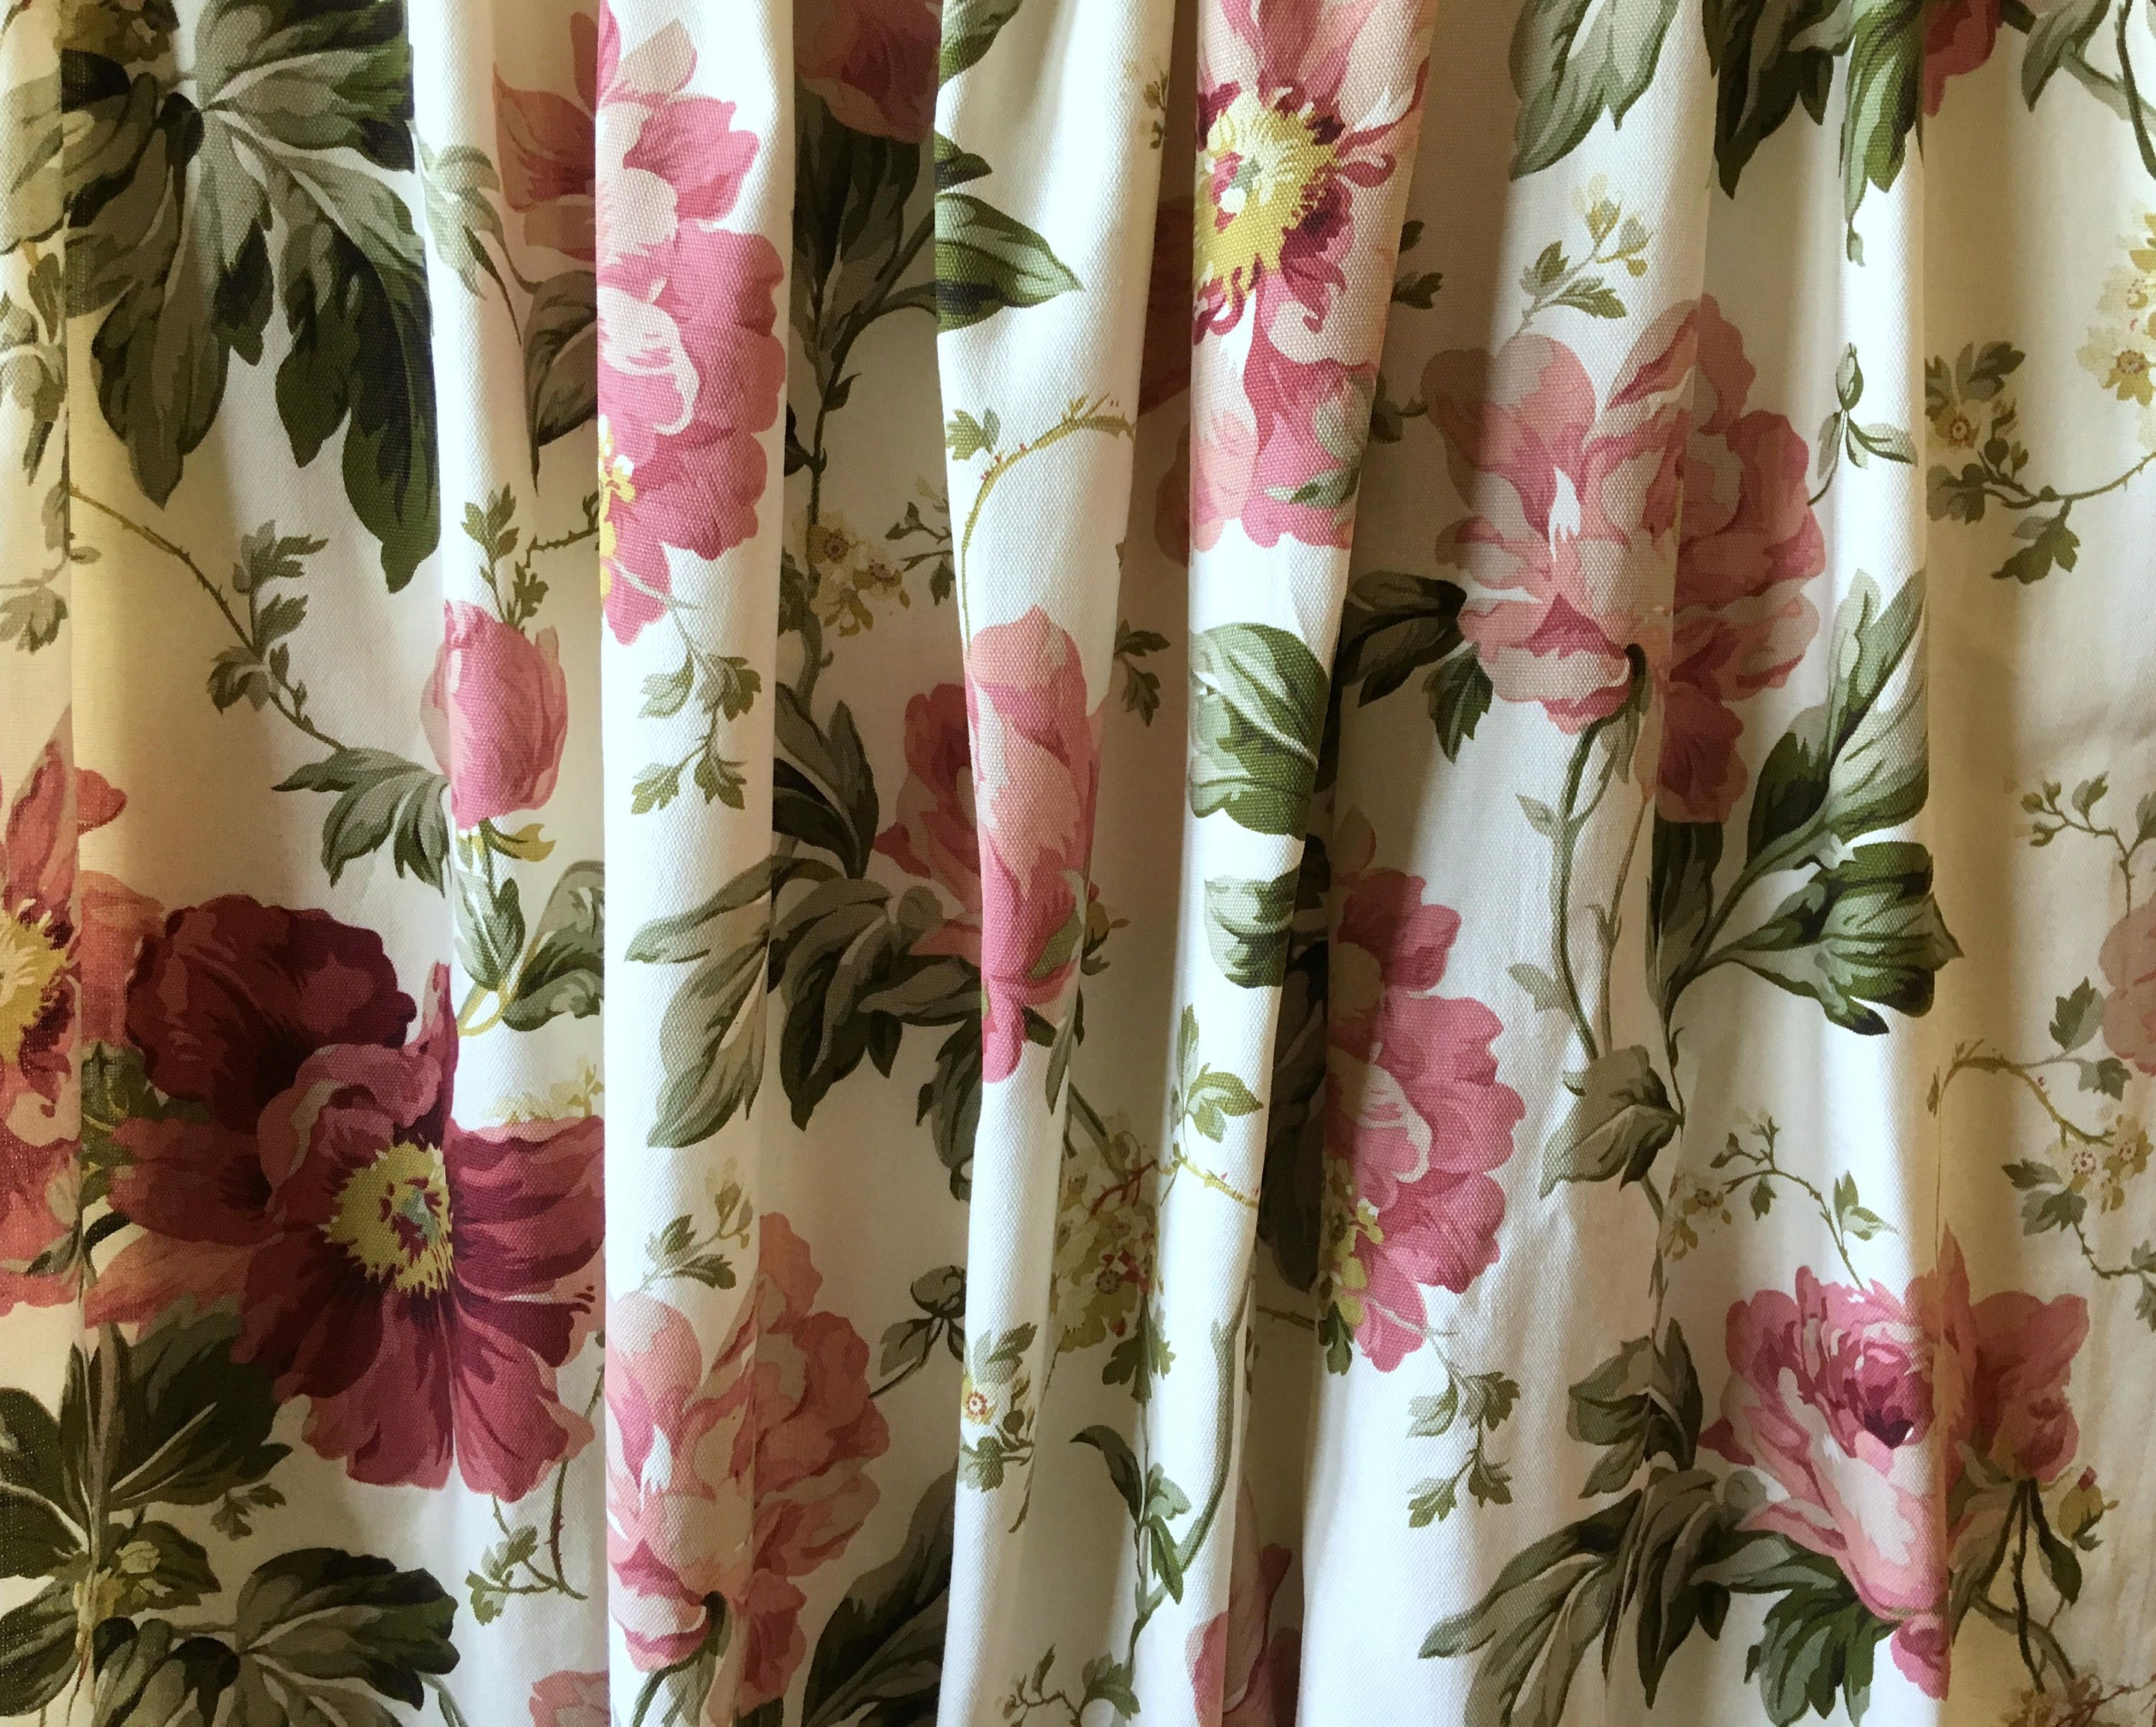 A Pair of vintage curtains with a floral screenprint design by Moygashel.